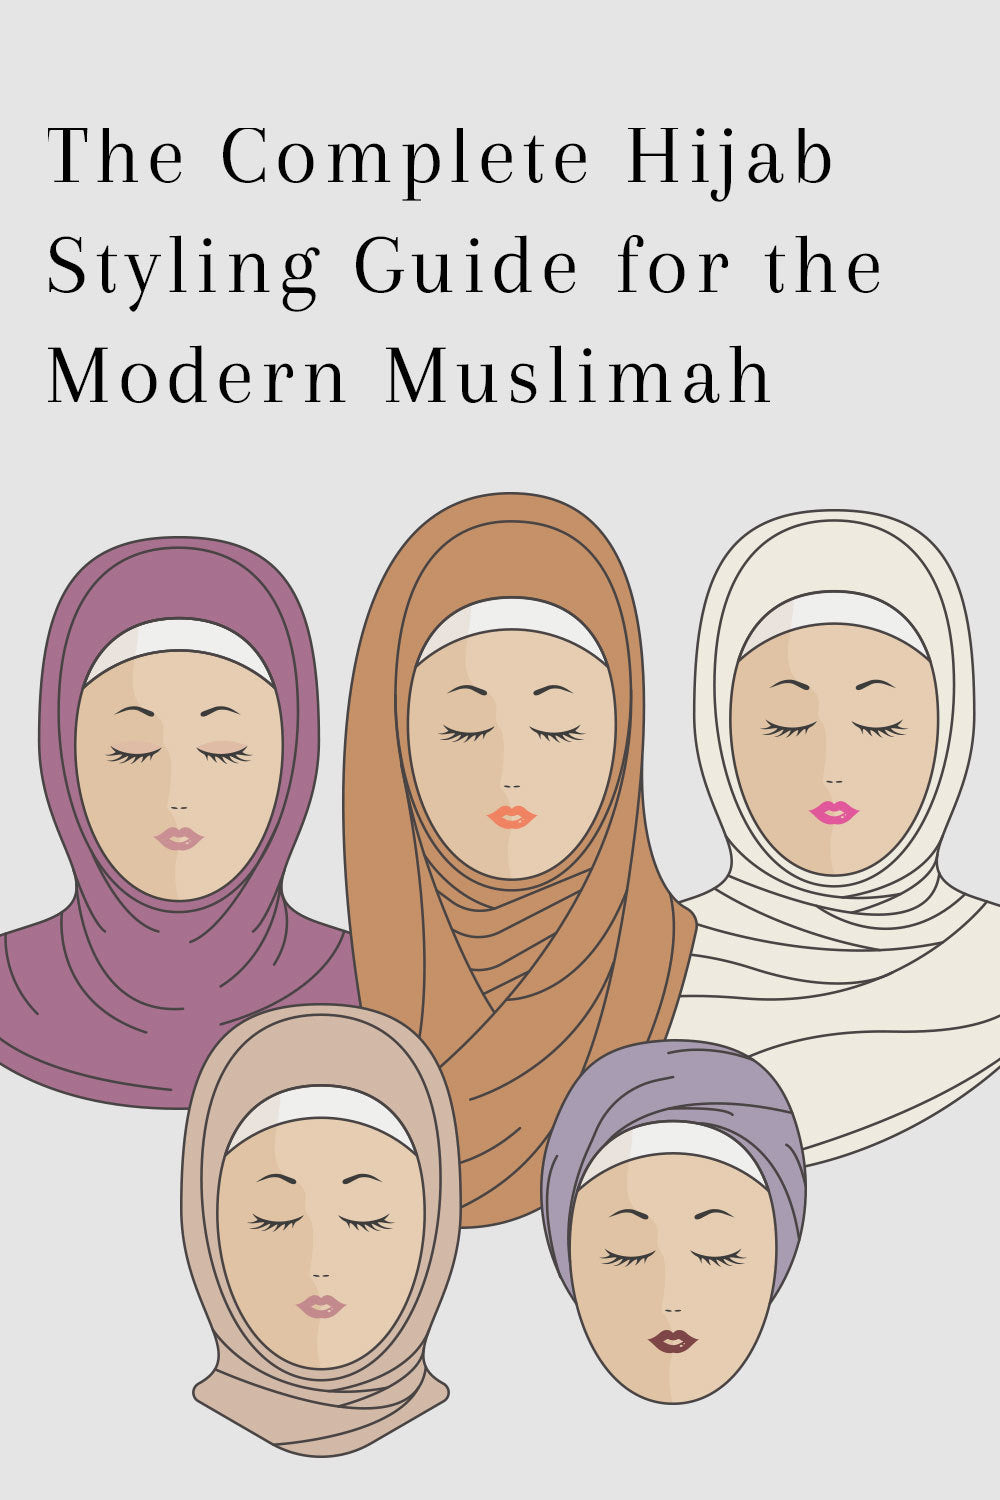 Hijab Styles: The Complete Guide for the Modern Muslimah